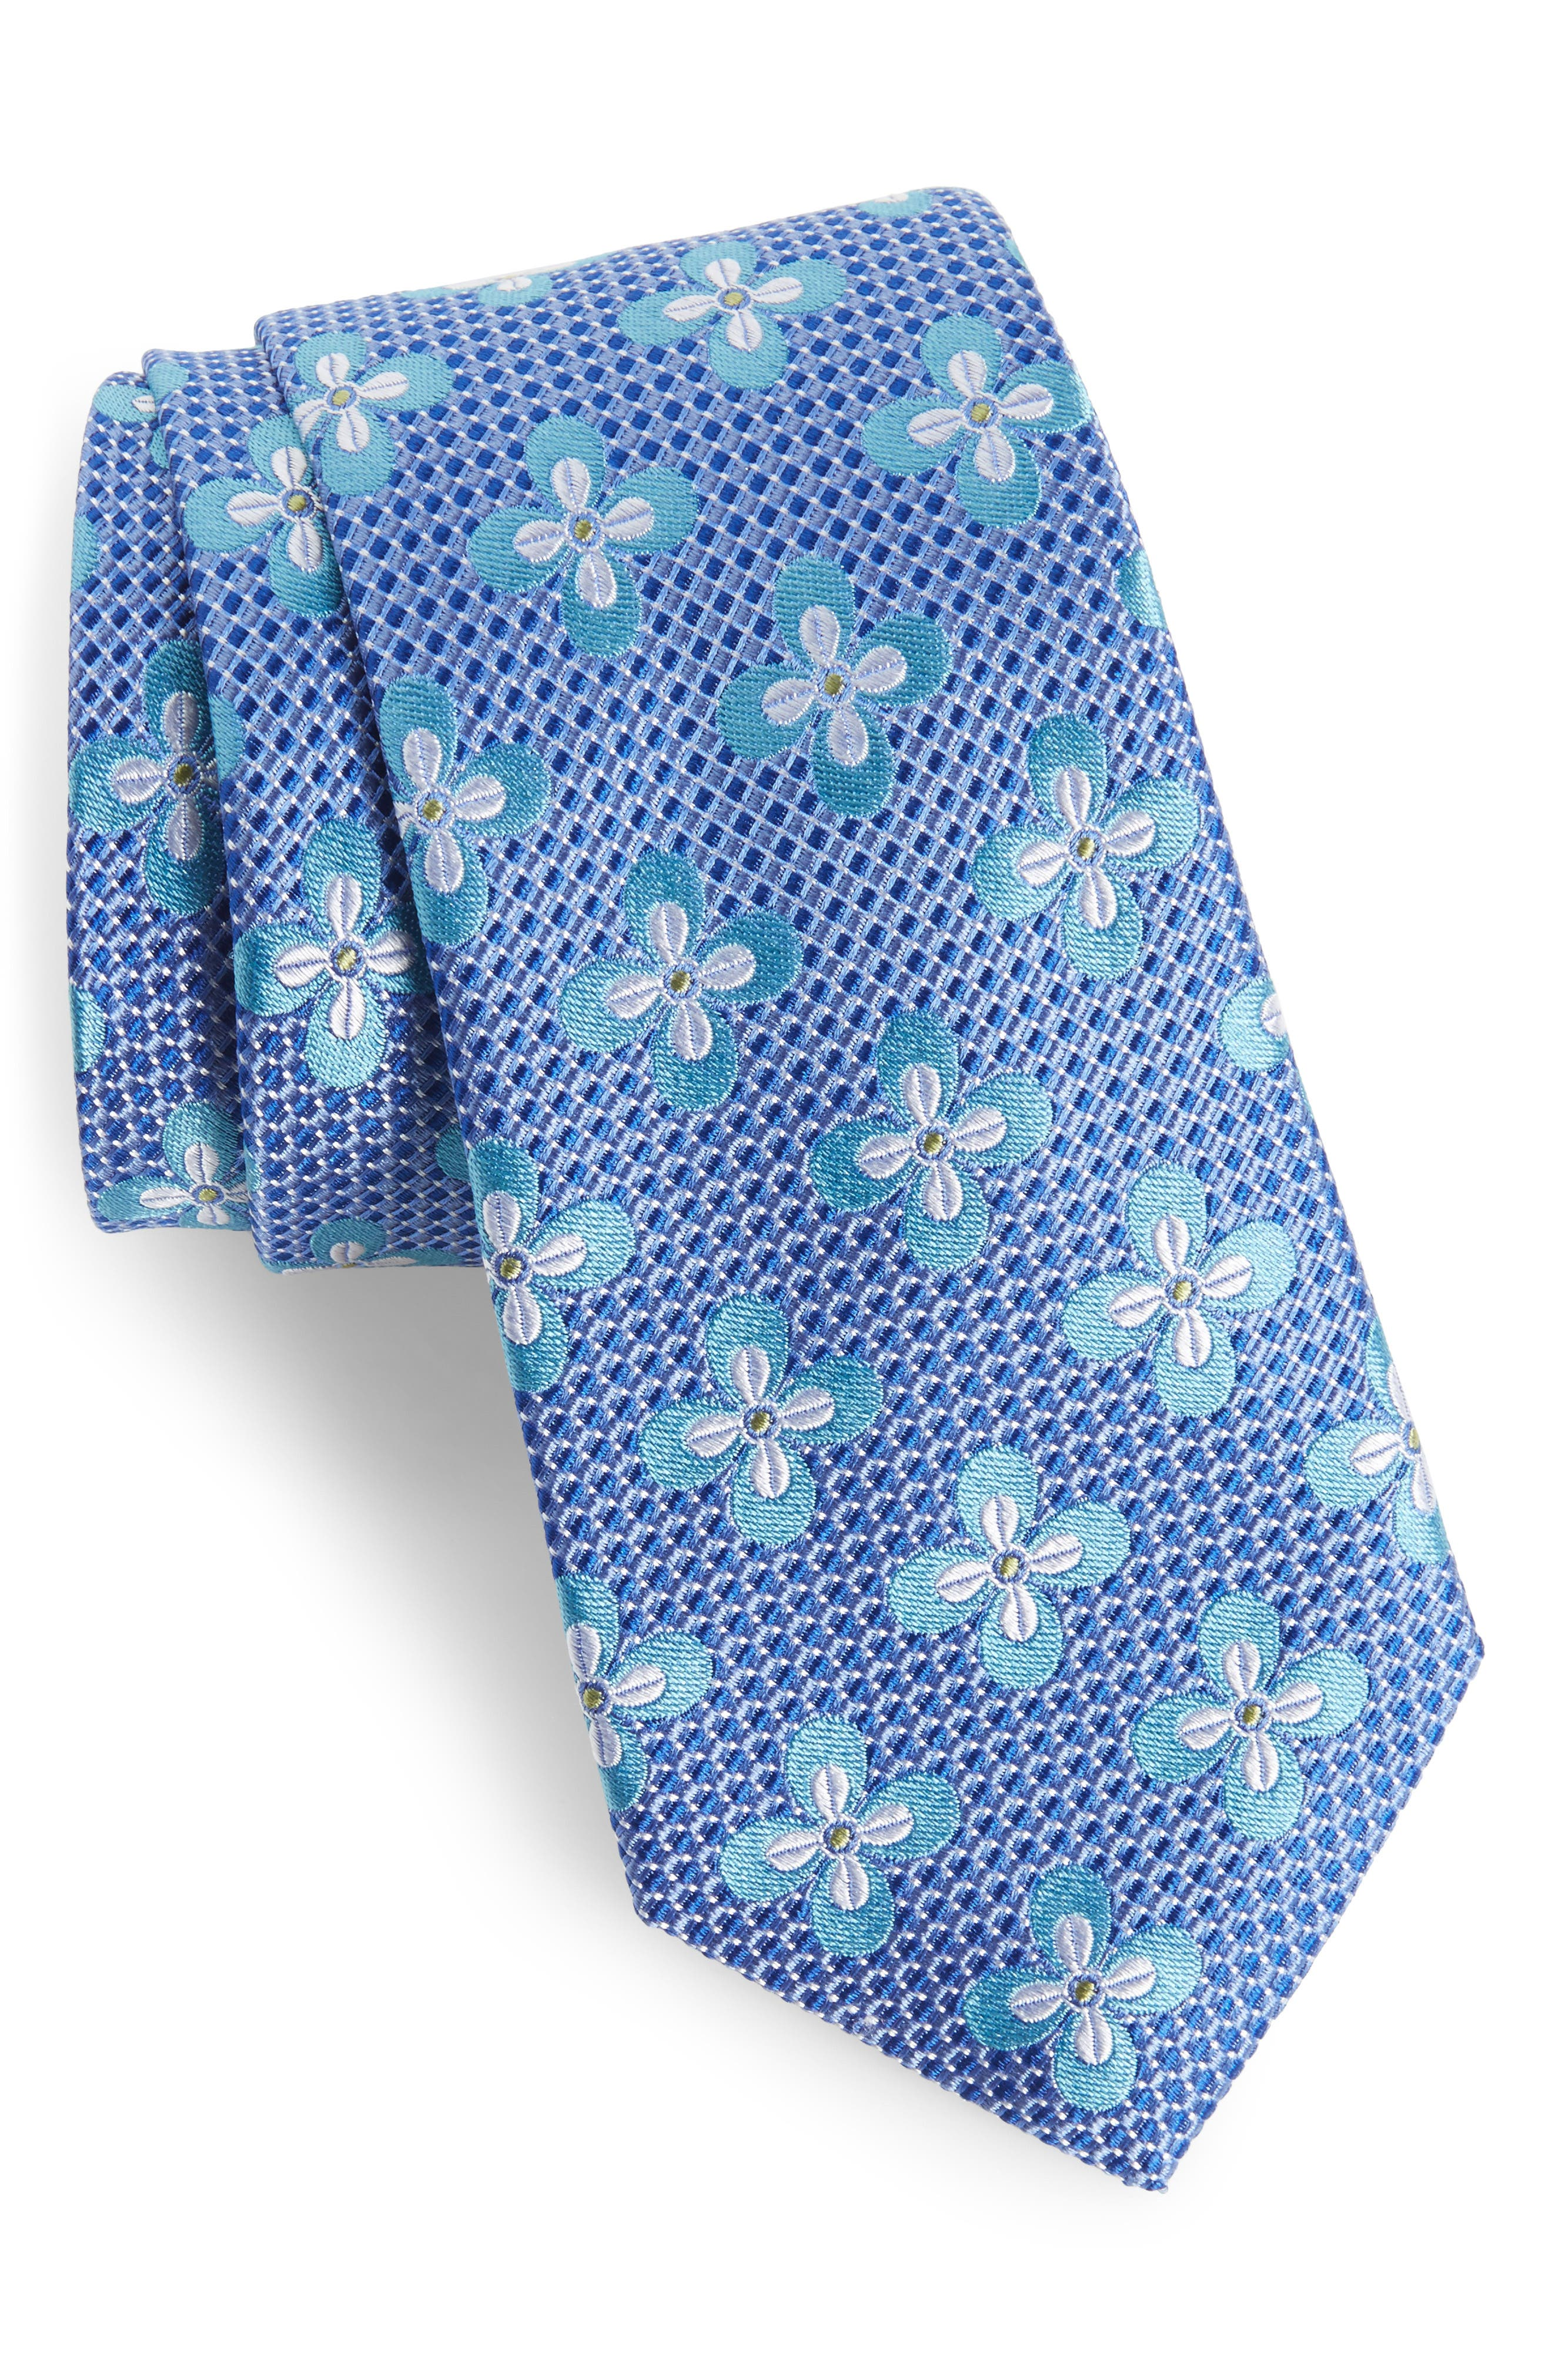 Alternate Image 1 Selected - Nordstrom Men's Shop Floral Silk Tie